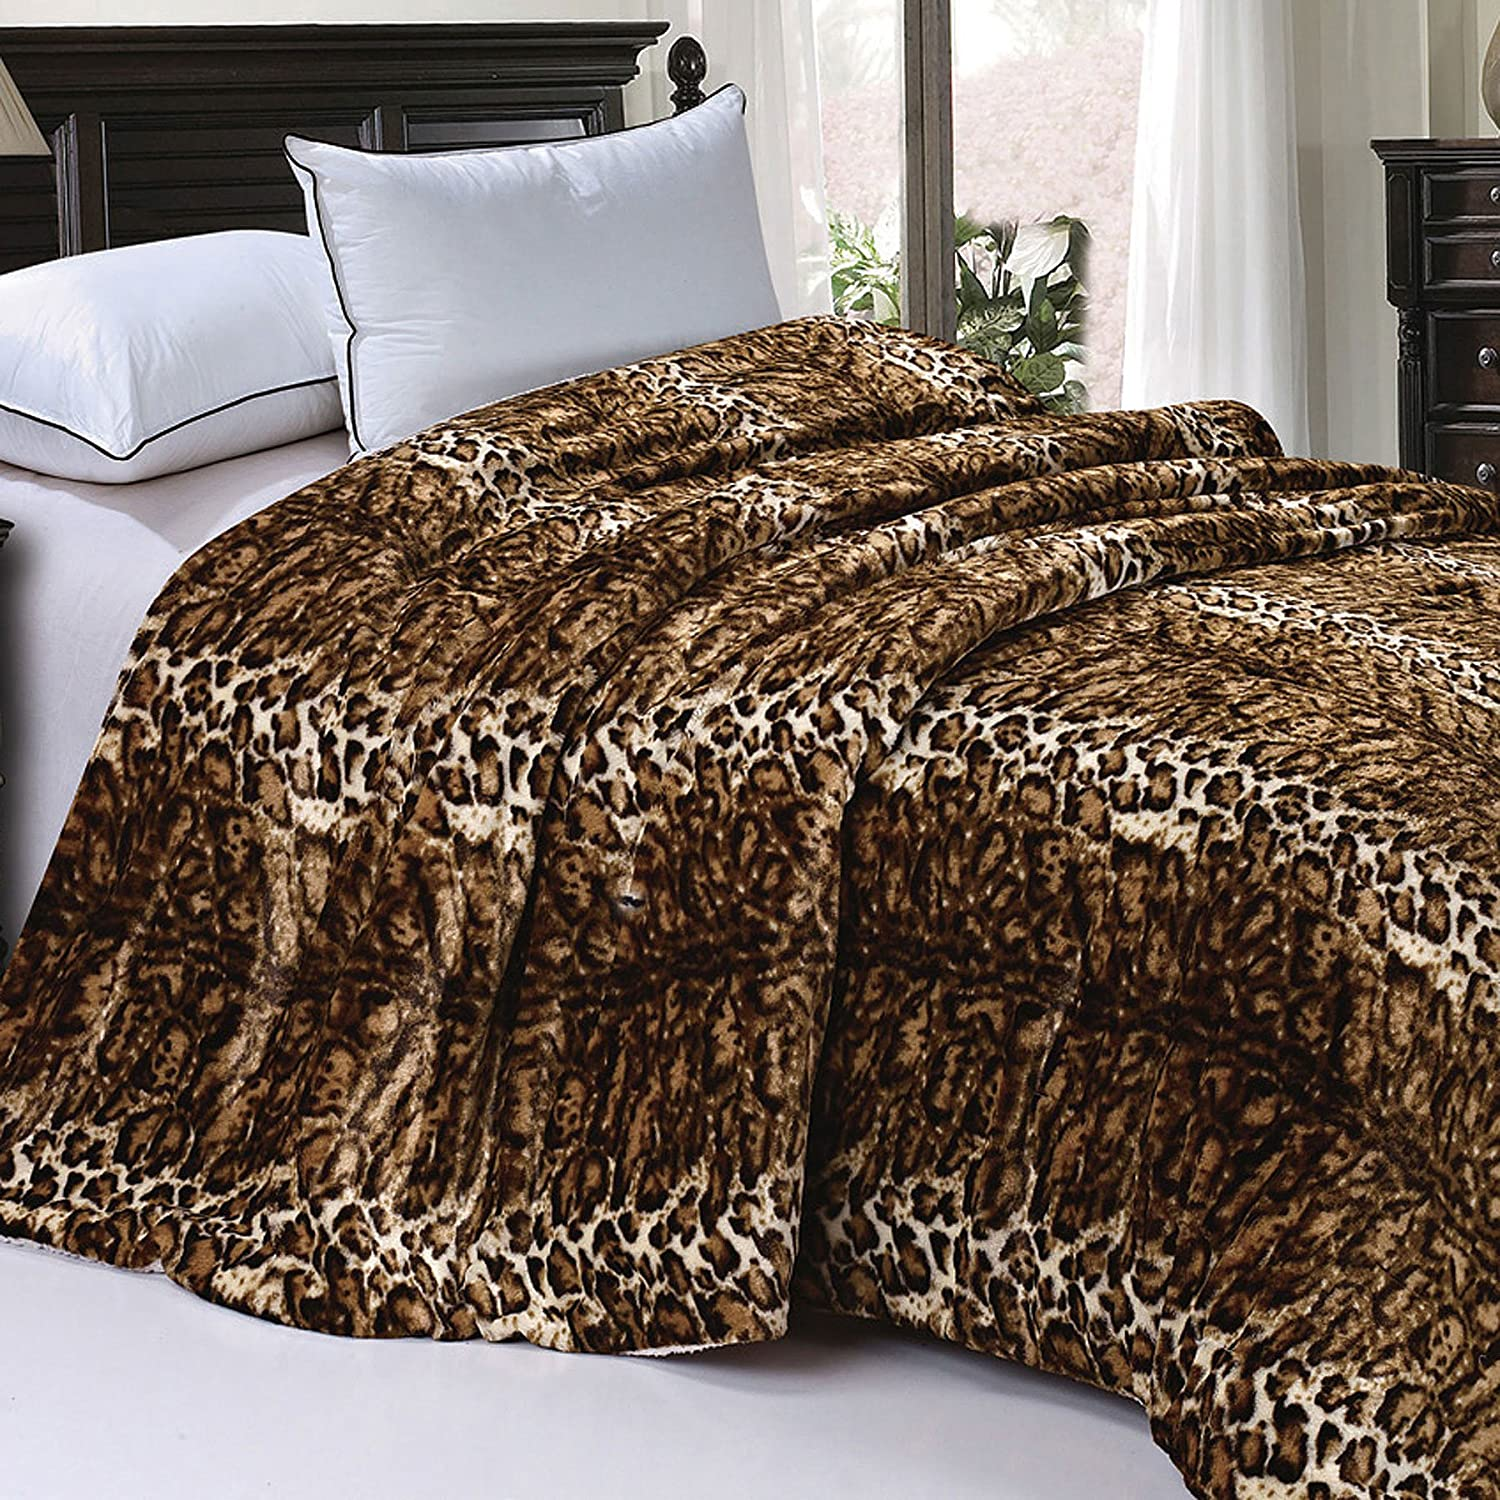 BOON Soft and Thick Faux Fur Sherpa Backing Bed Blanket, ML Leopard